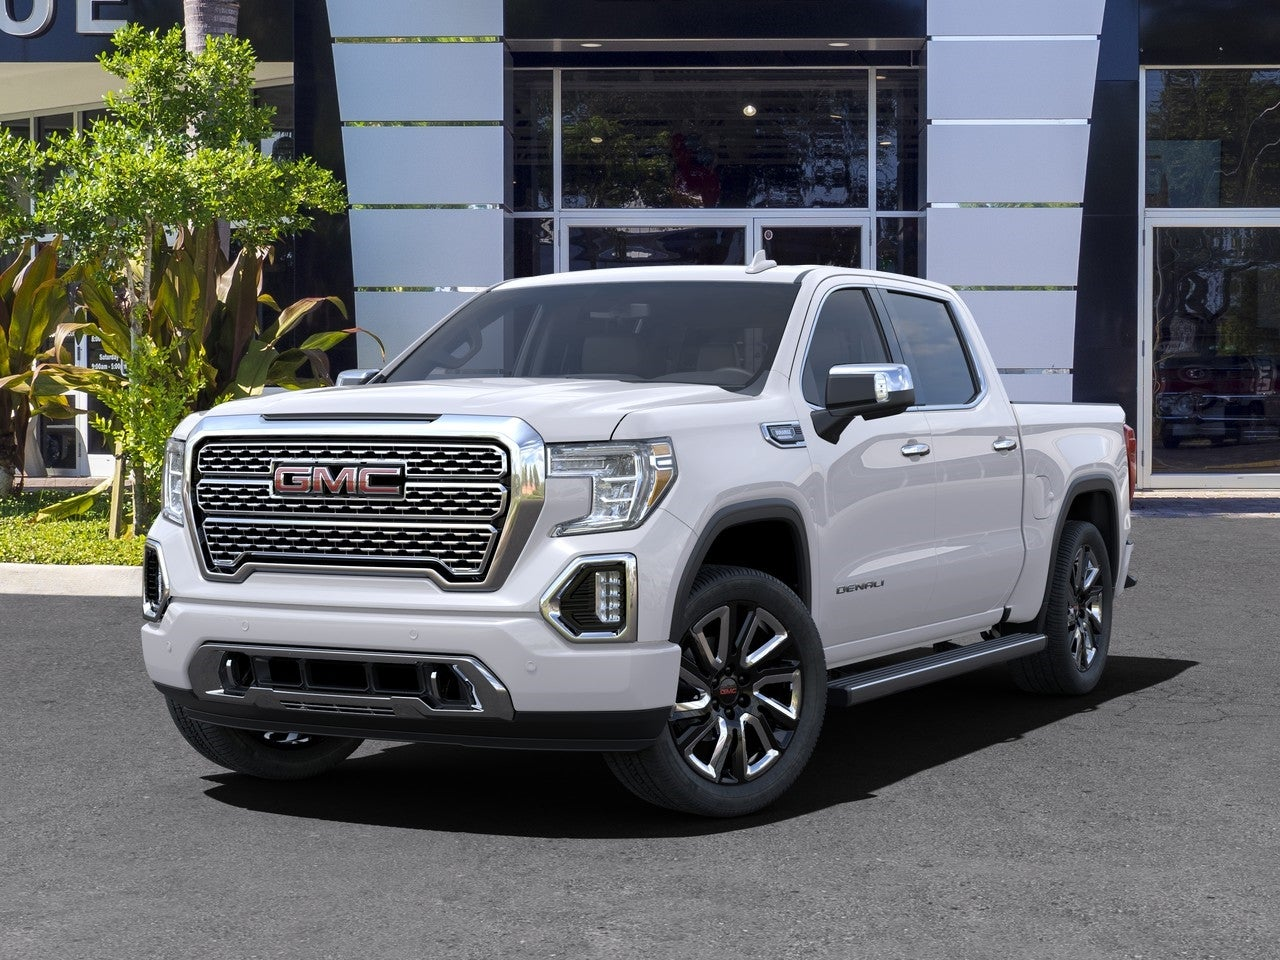 2021 GMC Sierra 1500 Crew Cab 4x4, Pickup #T21160 - photo 21